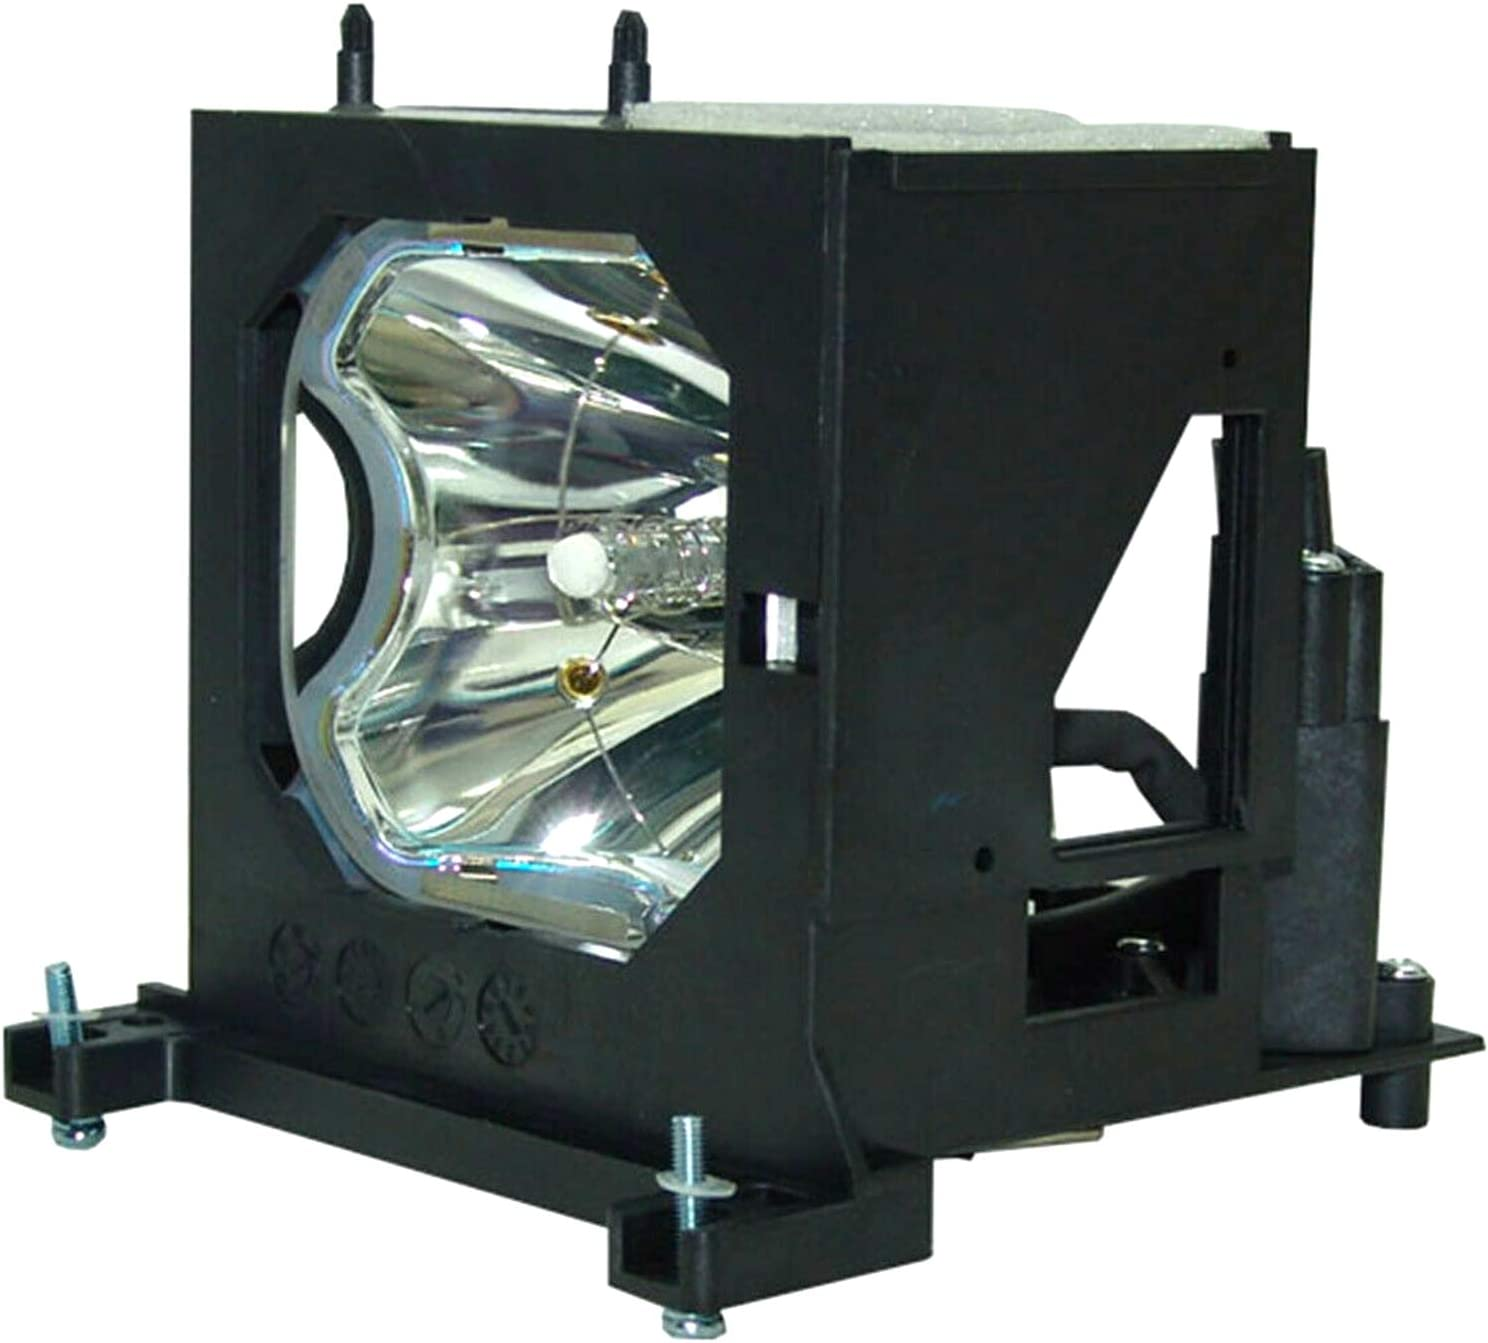 LMP-H200 Replacement Projector Lamp for Sony VPL-VW40 VPL-VW50 VPL-VW60 VW40 VW50 VW60, Lamp with Housing by CARSN